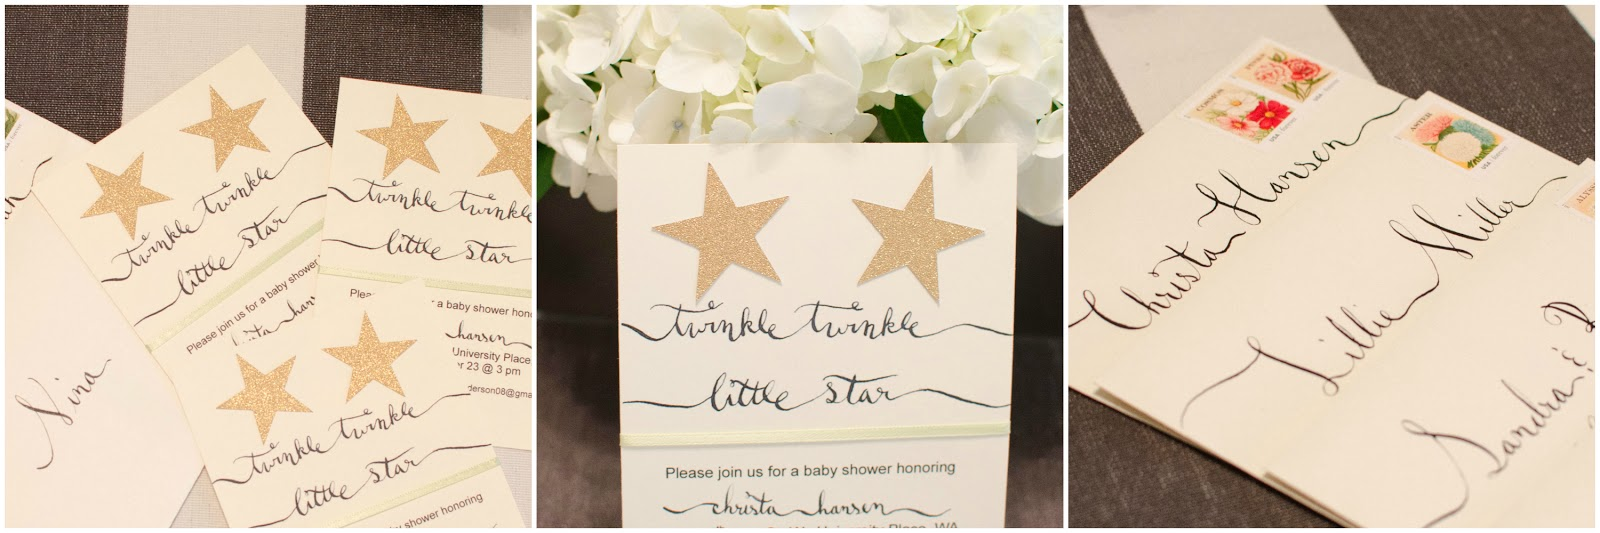 graphic relating to Free Printable Twinkle Twinkle Little Star Baby Shower Invitations named these types of minimal enjoys: Twinkle Twinkle Tiny Star A Story of